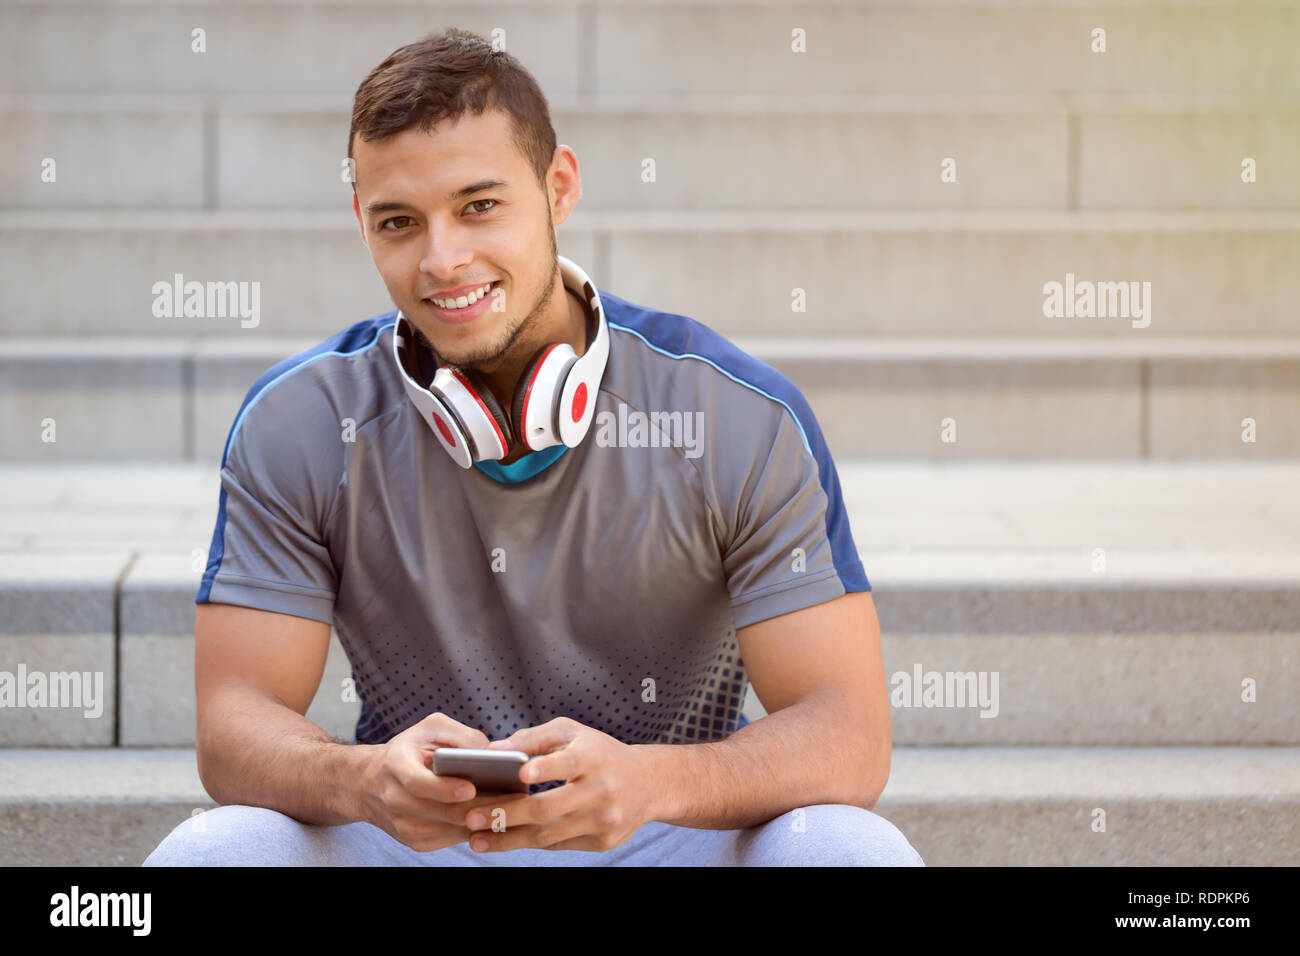 Listening to music young latin man listen headphones smiling copyspace copy space outdoor - Stock Image